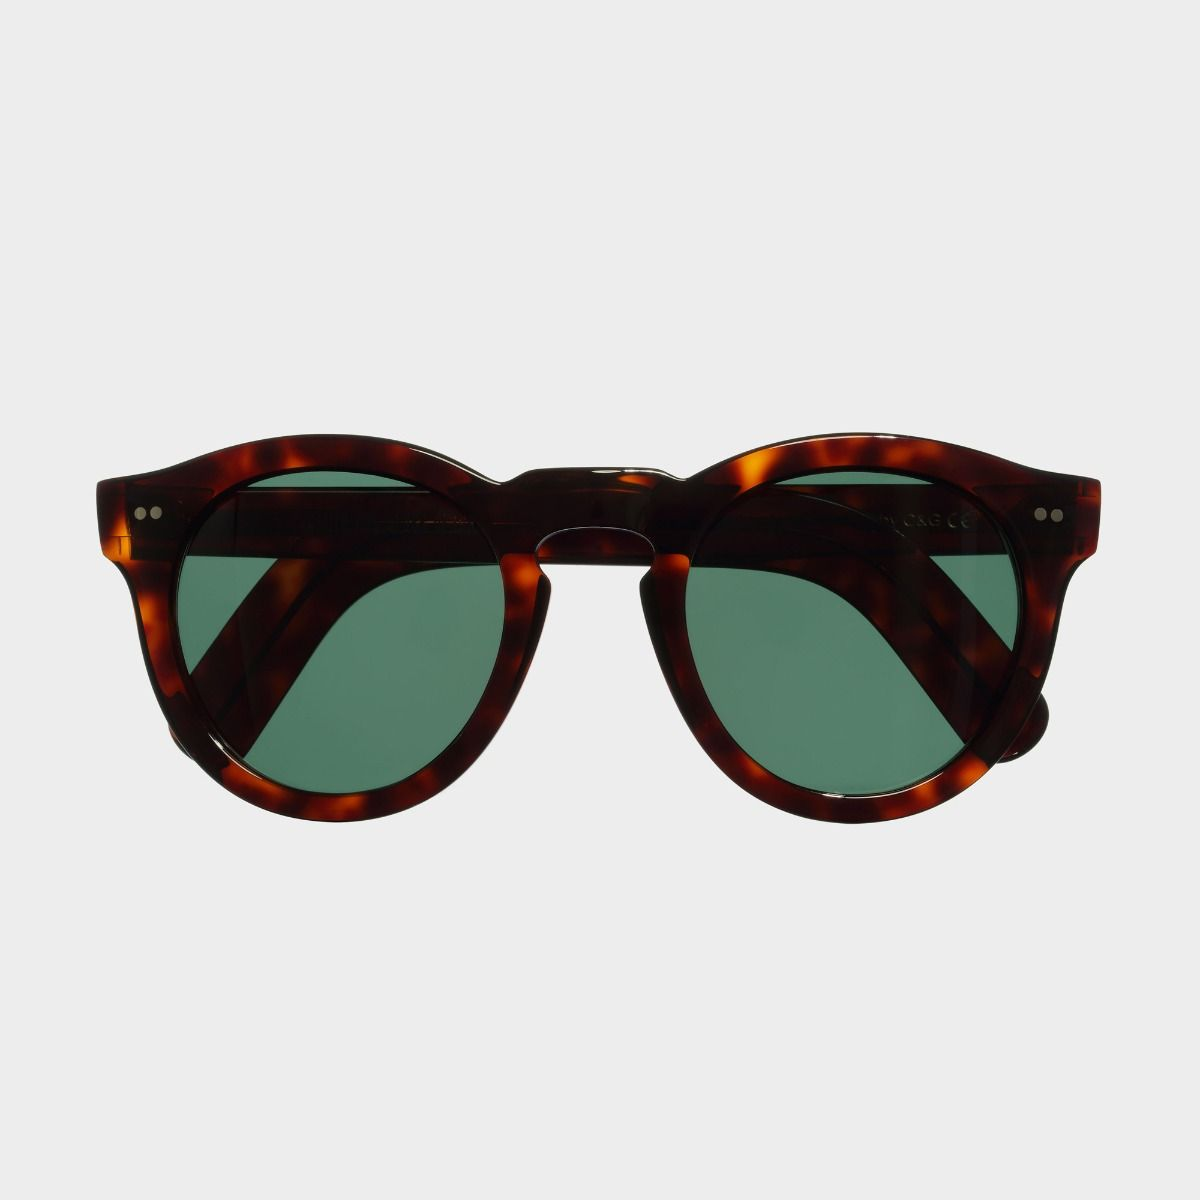 0734 Round Sunglasses (Large)-Dark Turtle